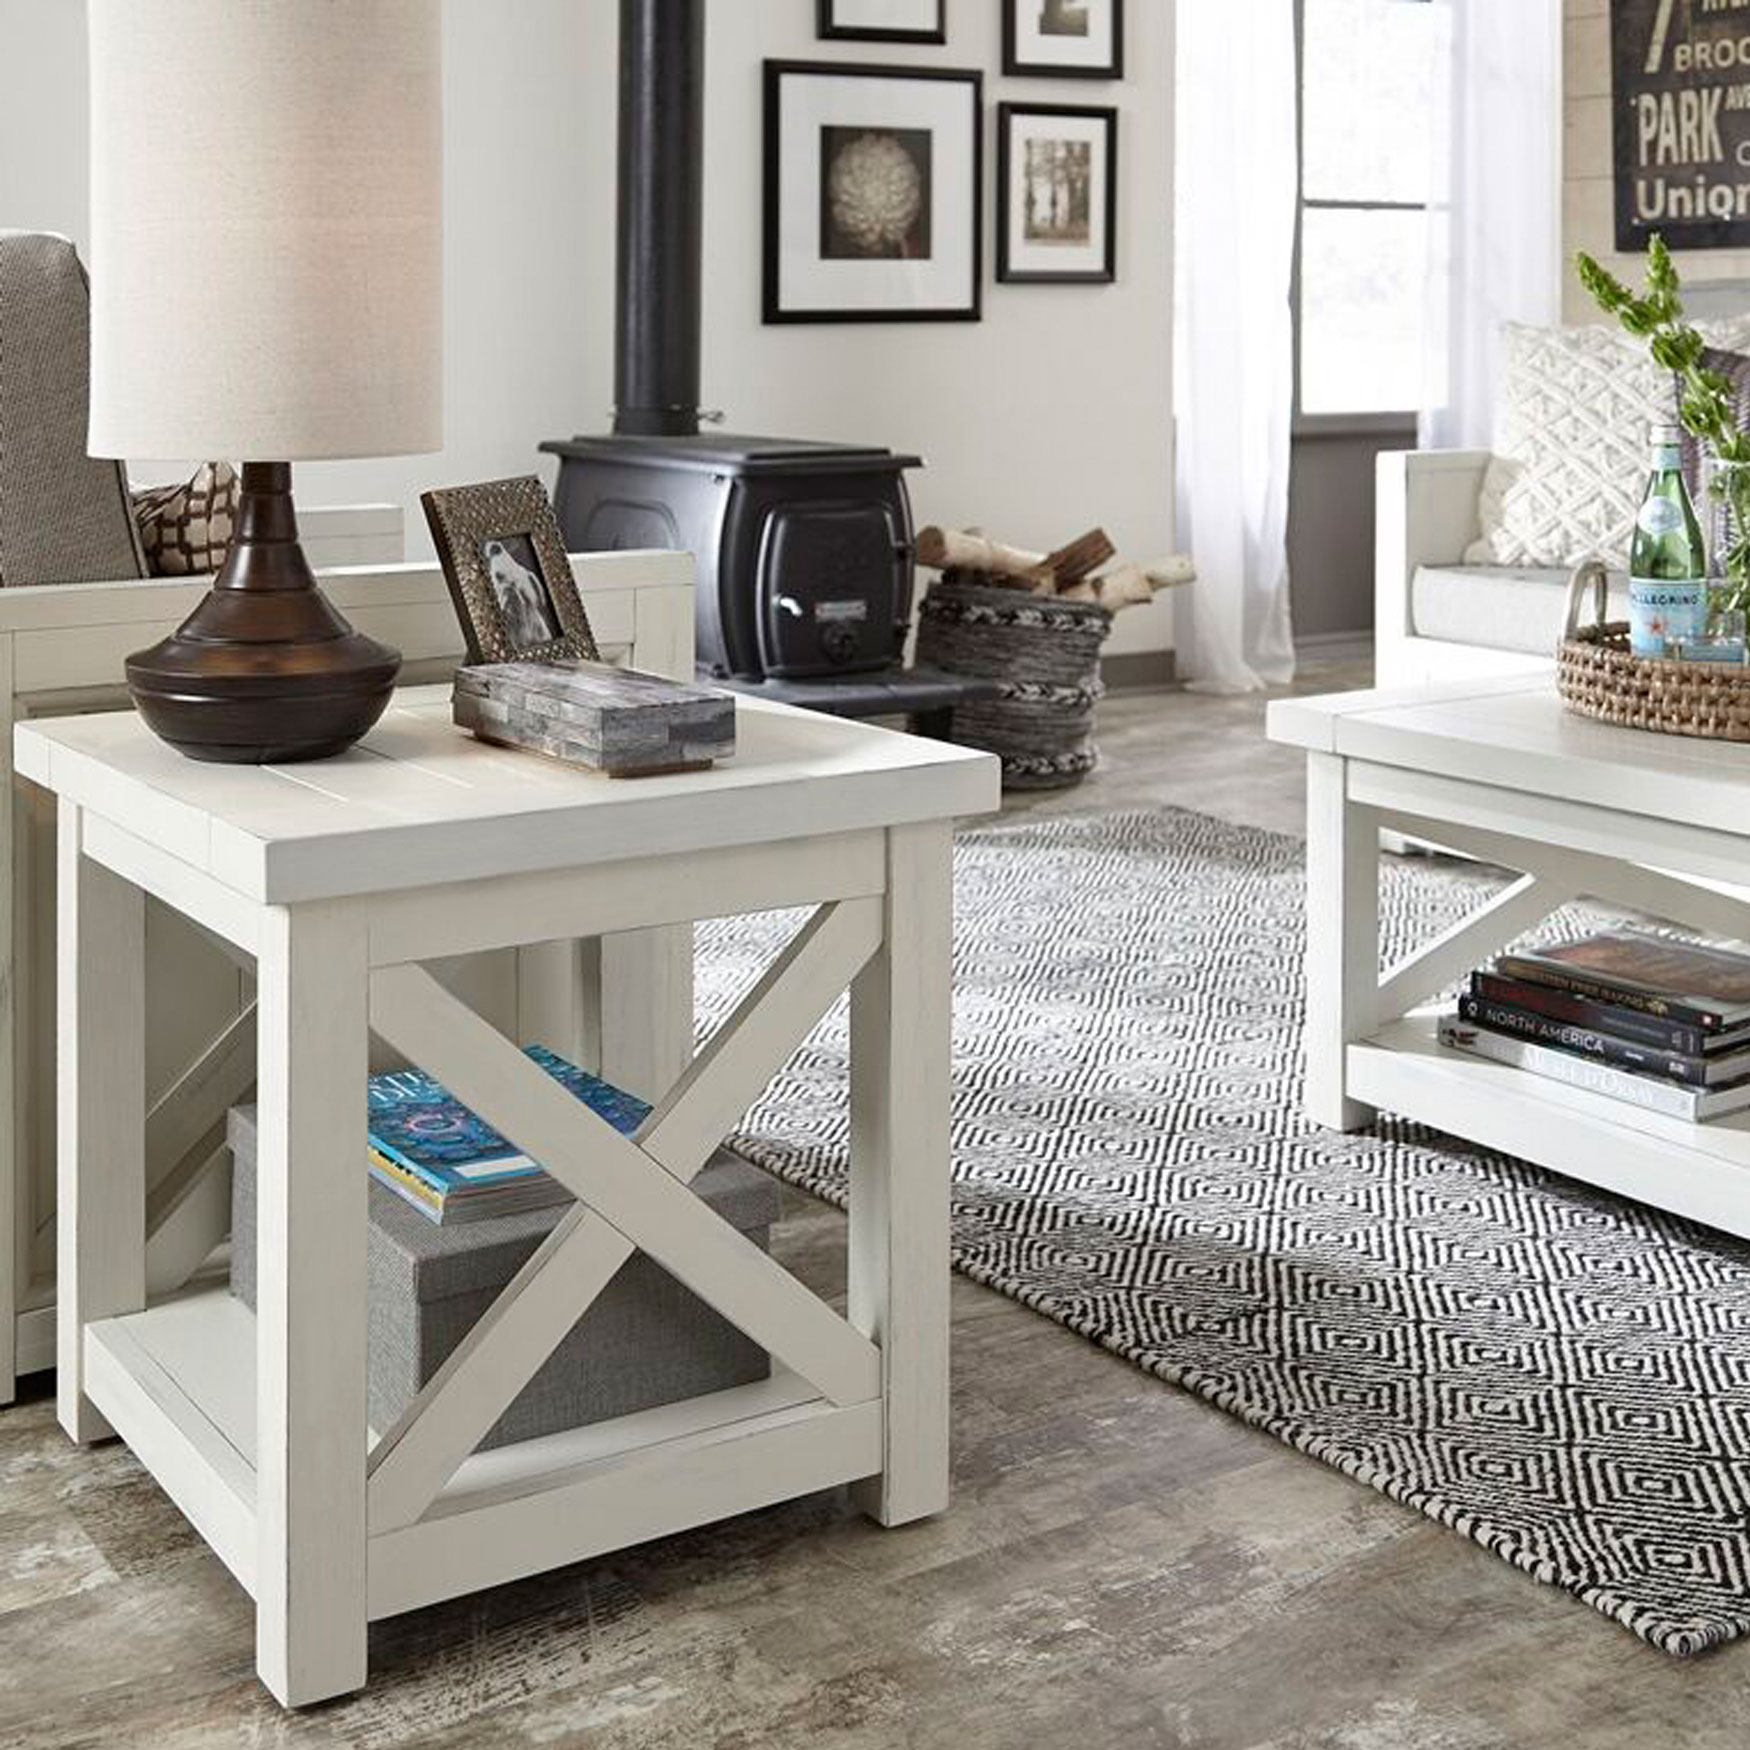 Seaside Lodge End Table, WHITE